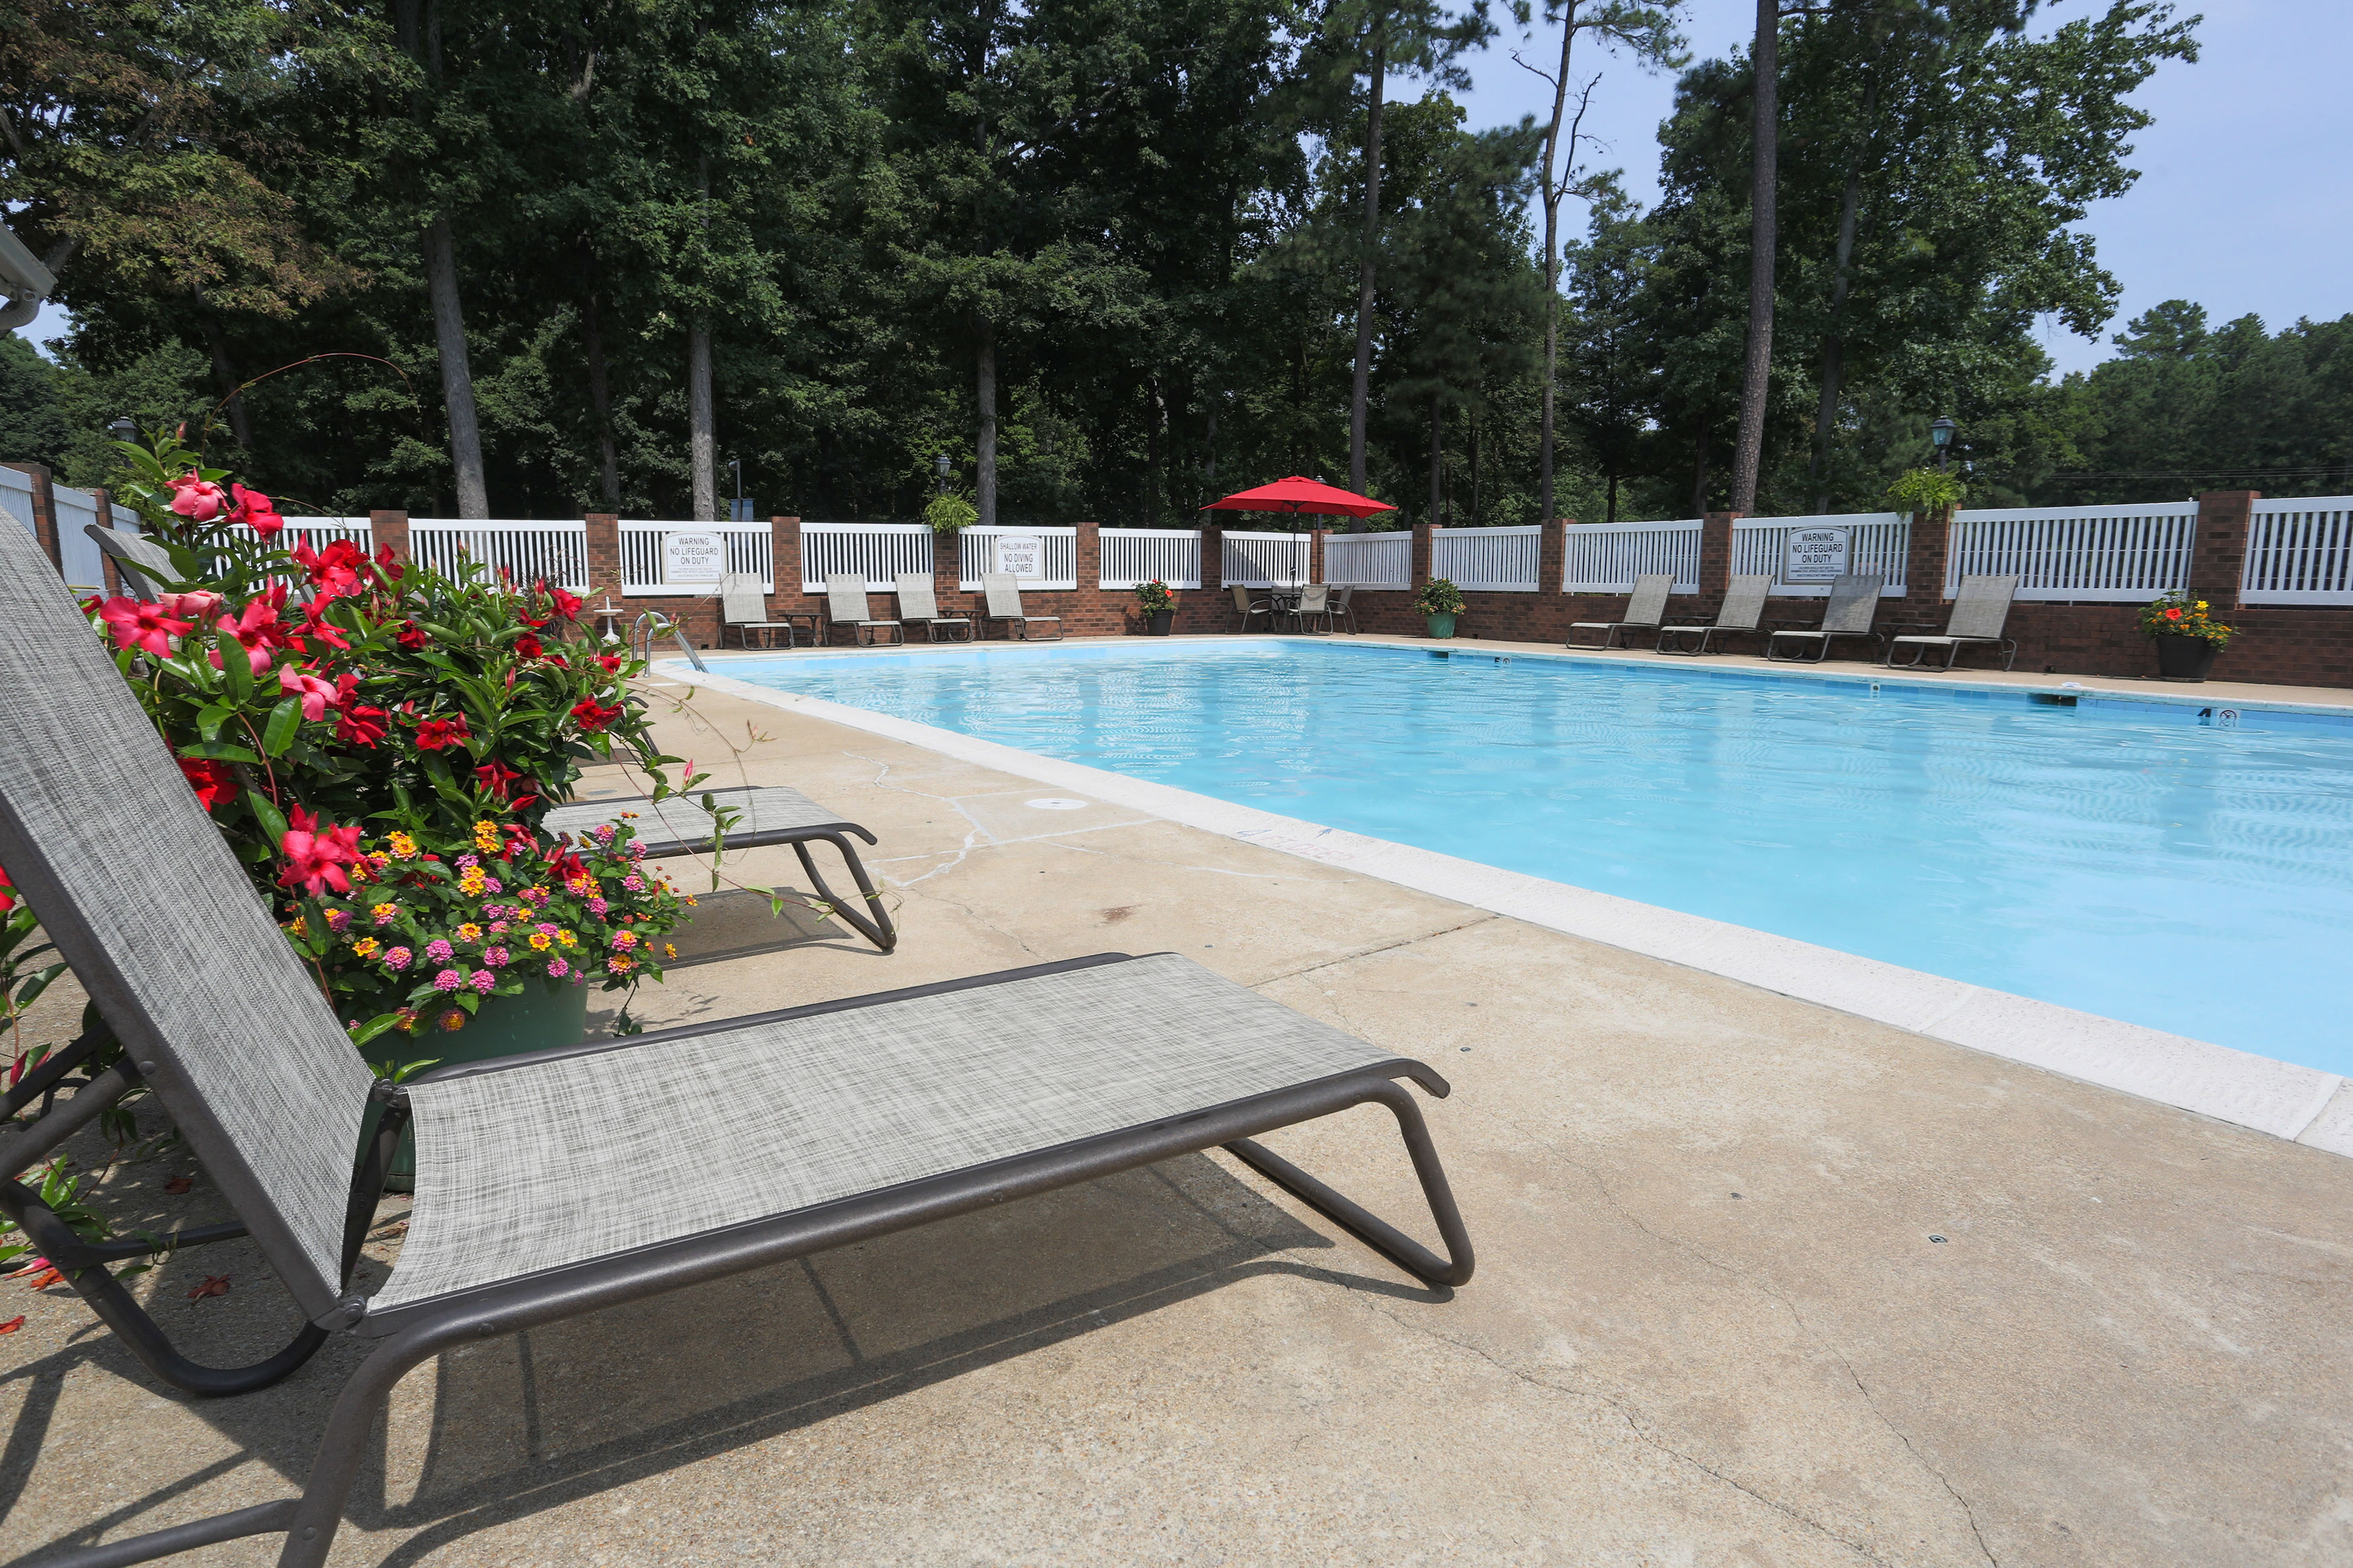 Refreshing Swimming Pool At Sterling Beaufont Apartments